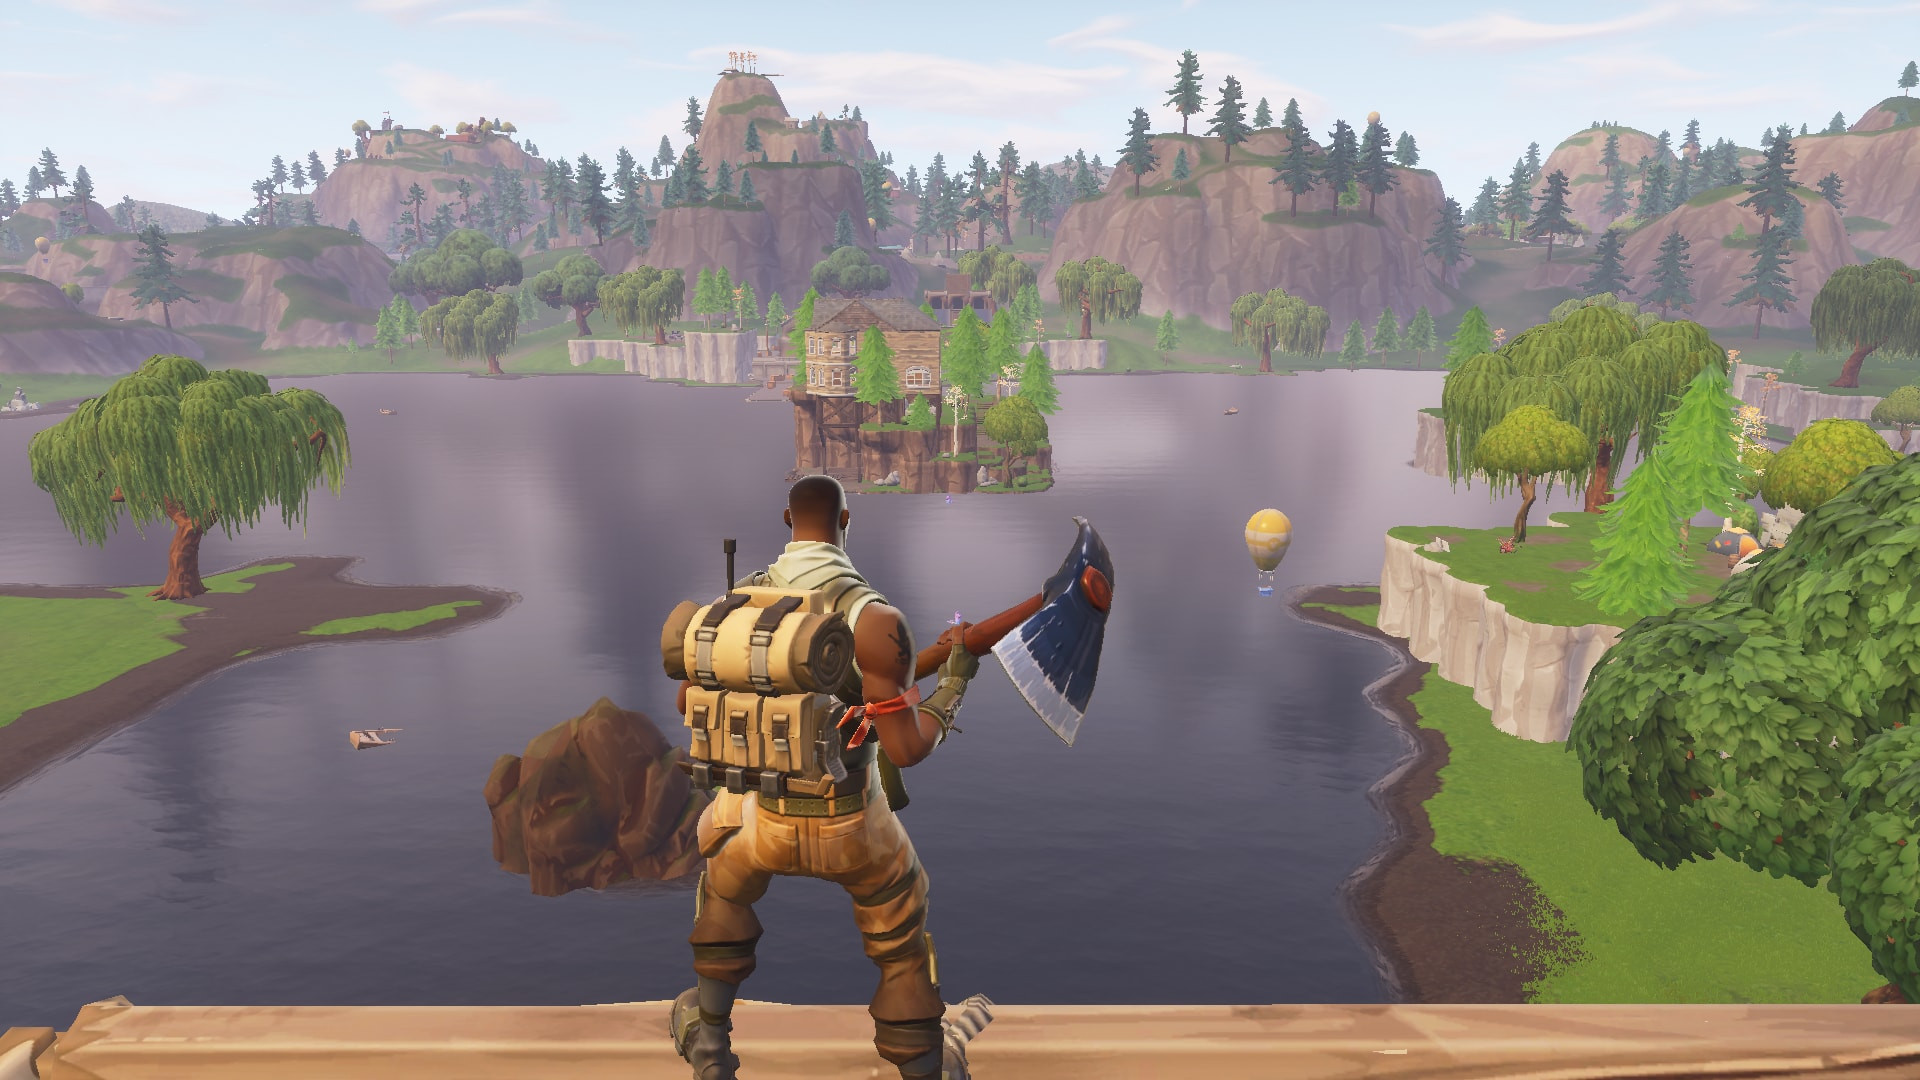 Loot lake top view in fortnite - zilliongamer your game guide